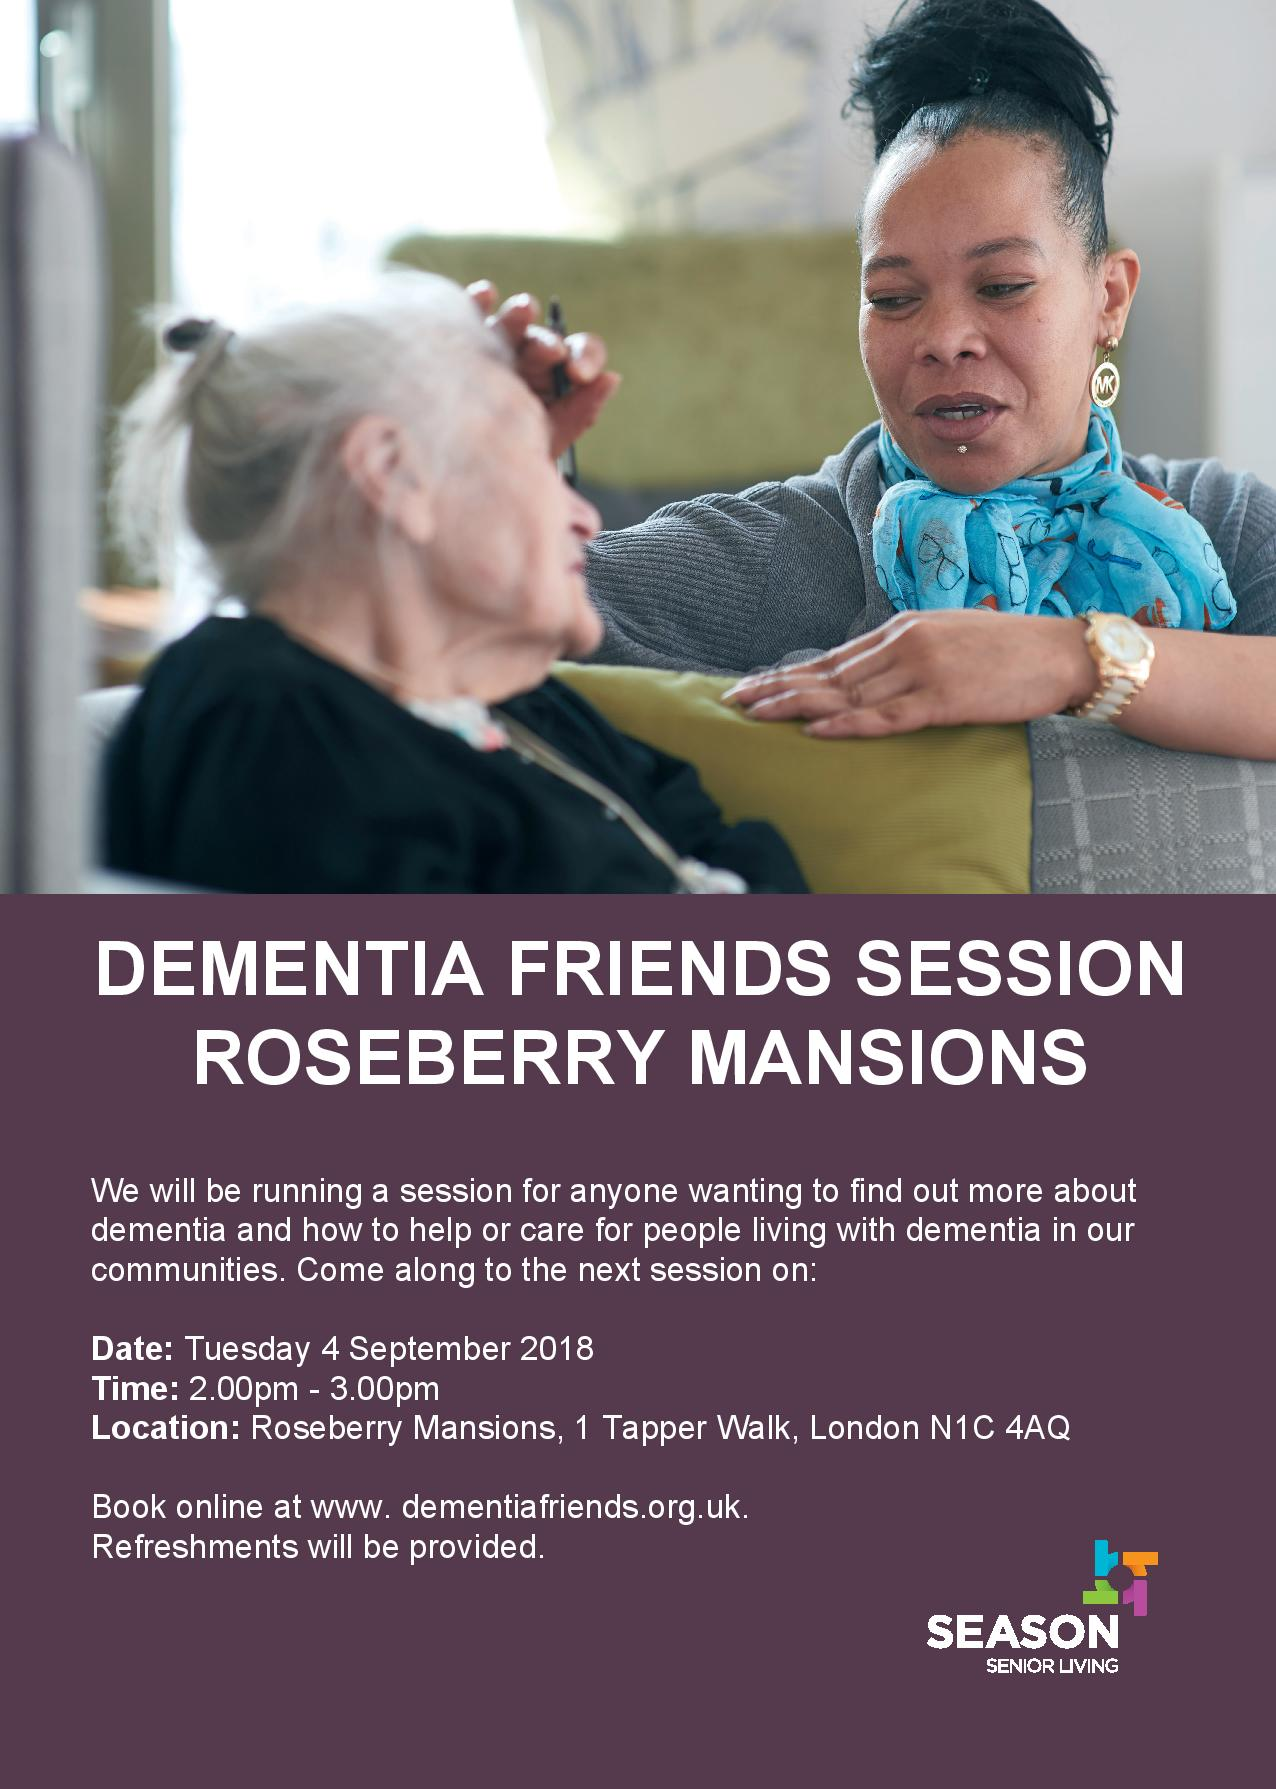 DEMENTIA FRIENDS SESSION ROSEBERRY MANSIONS